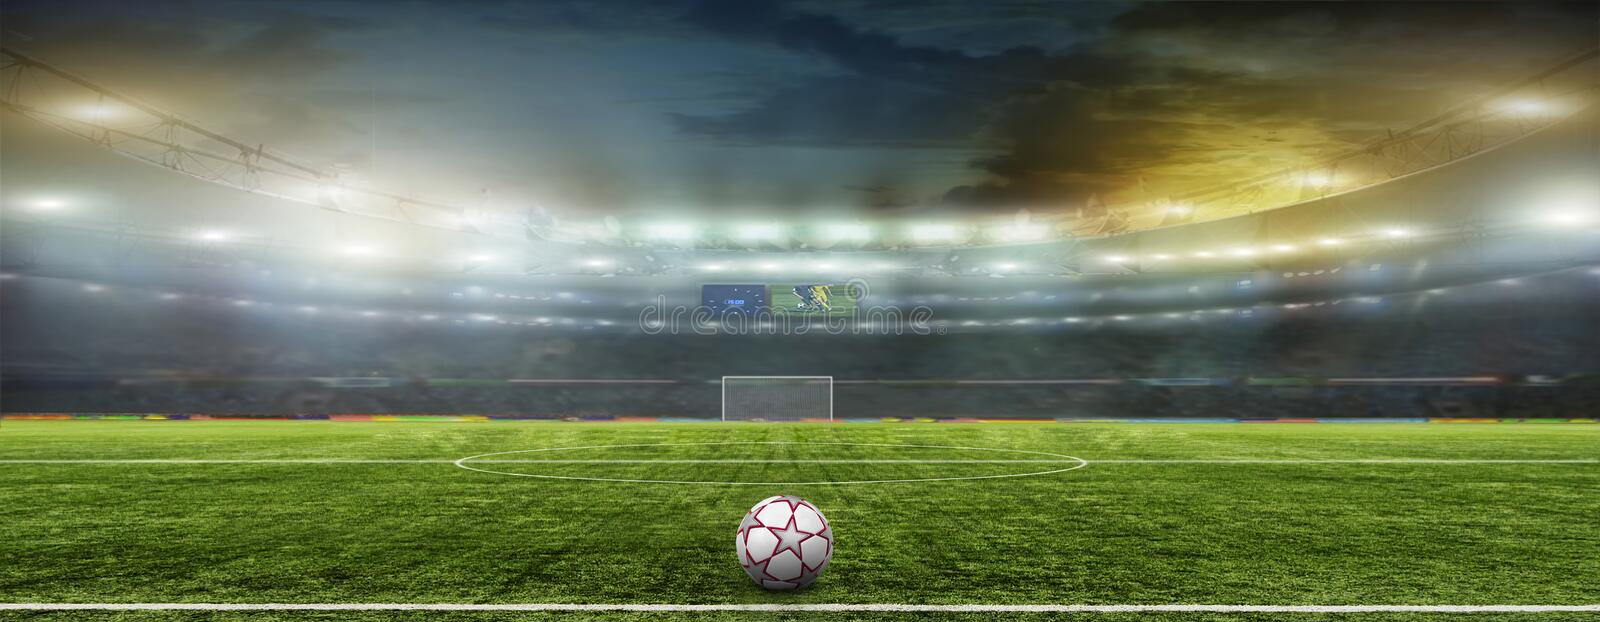 Stadium with fans the night royalty free stock photography